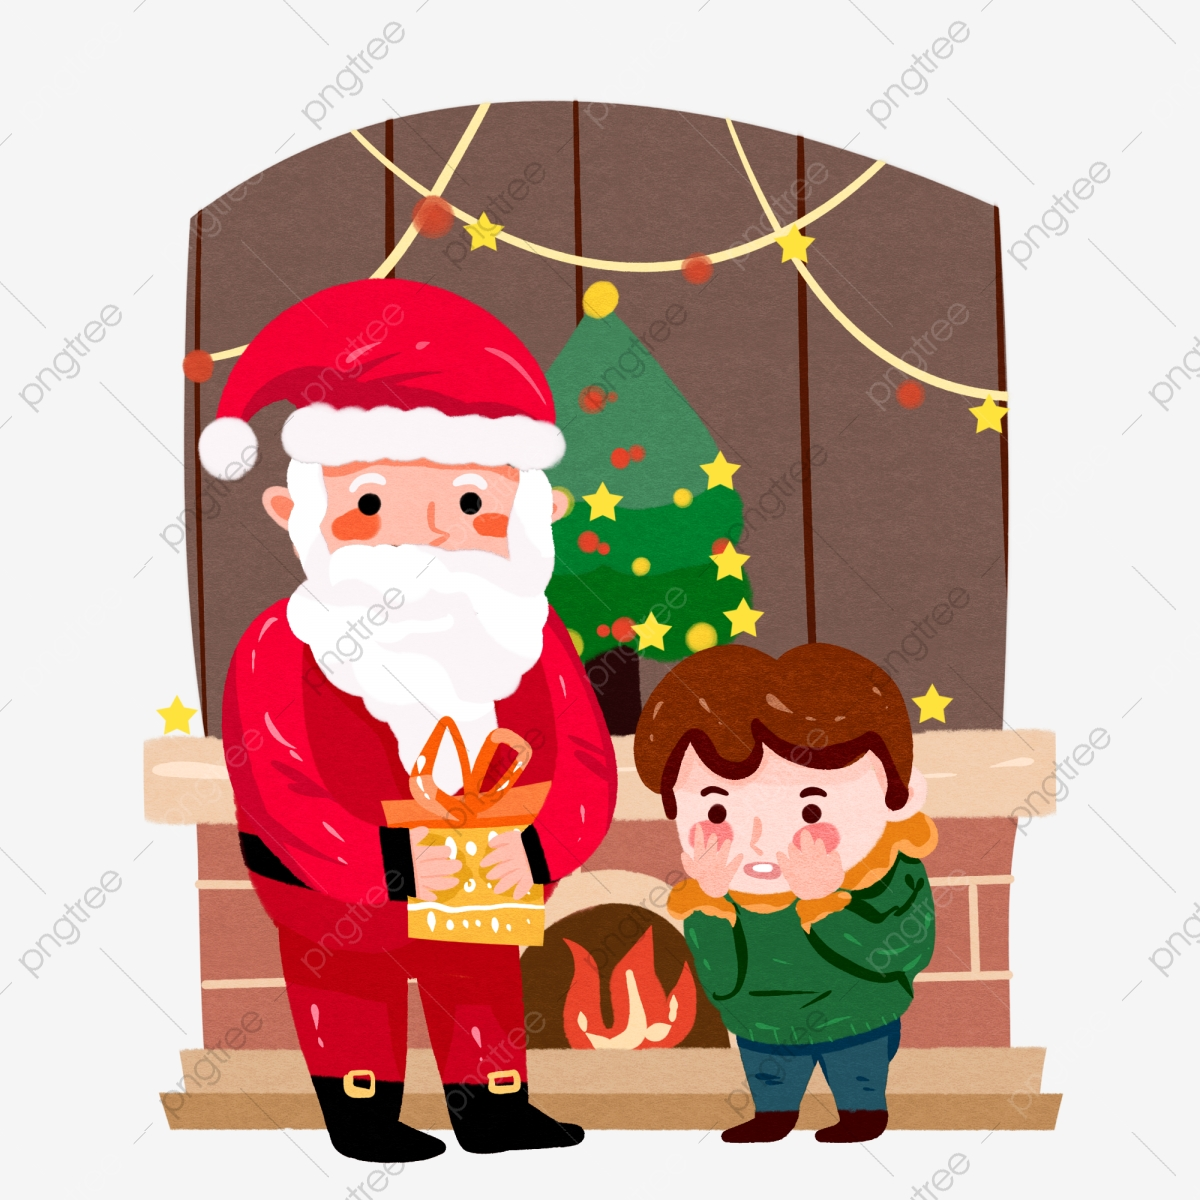 Christmas Fireplace Scene Clipart.Christmas Scene Santa Claus Giving Gifts Little Boy